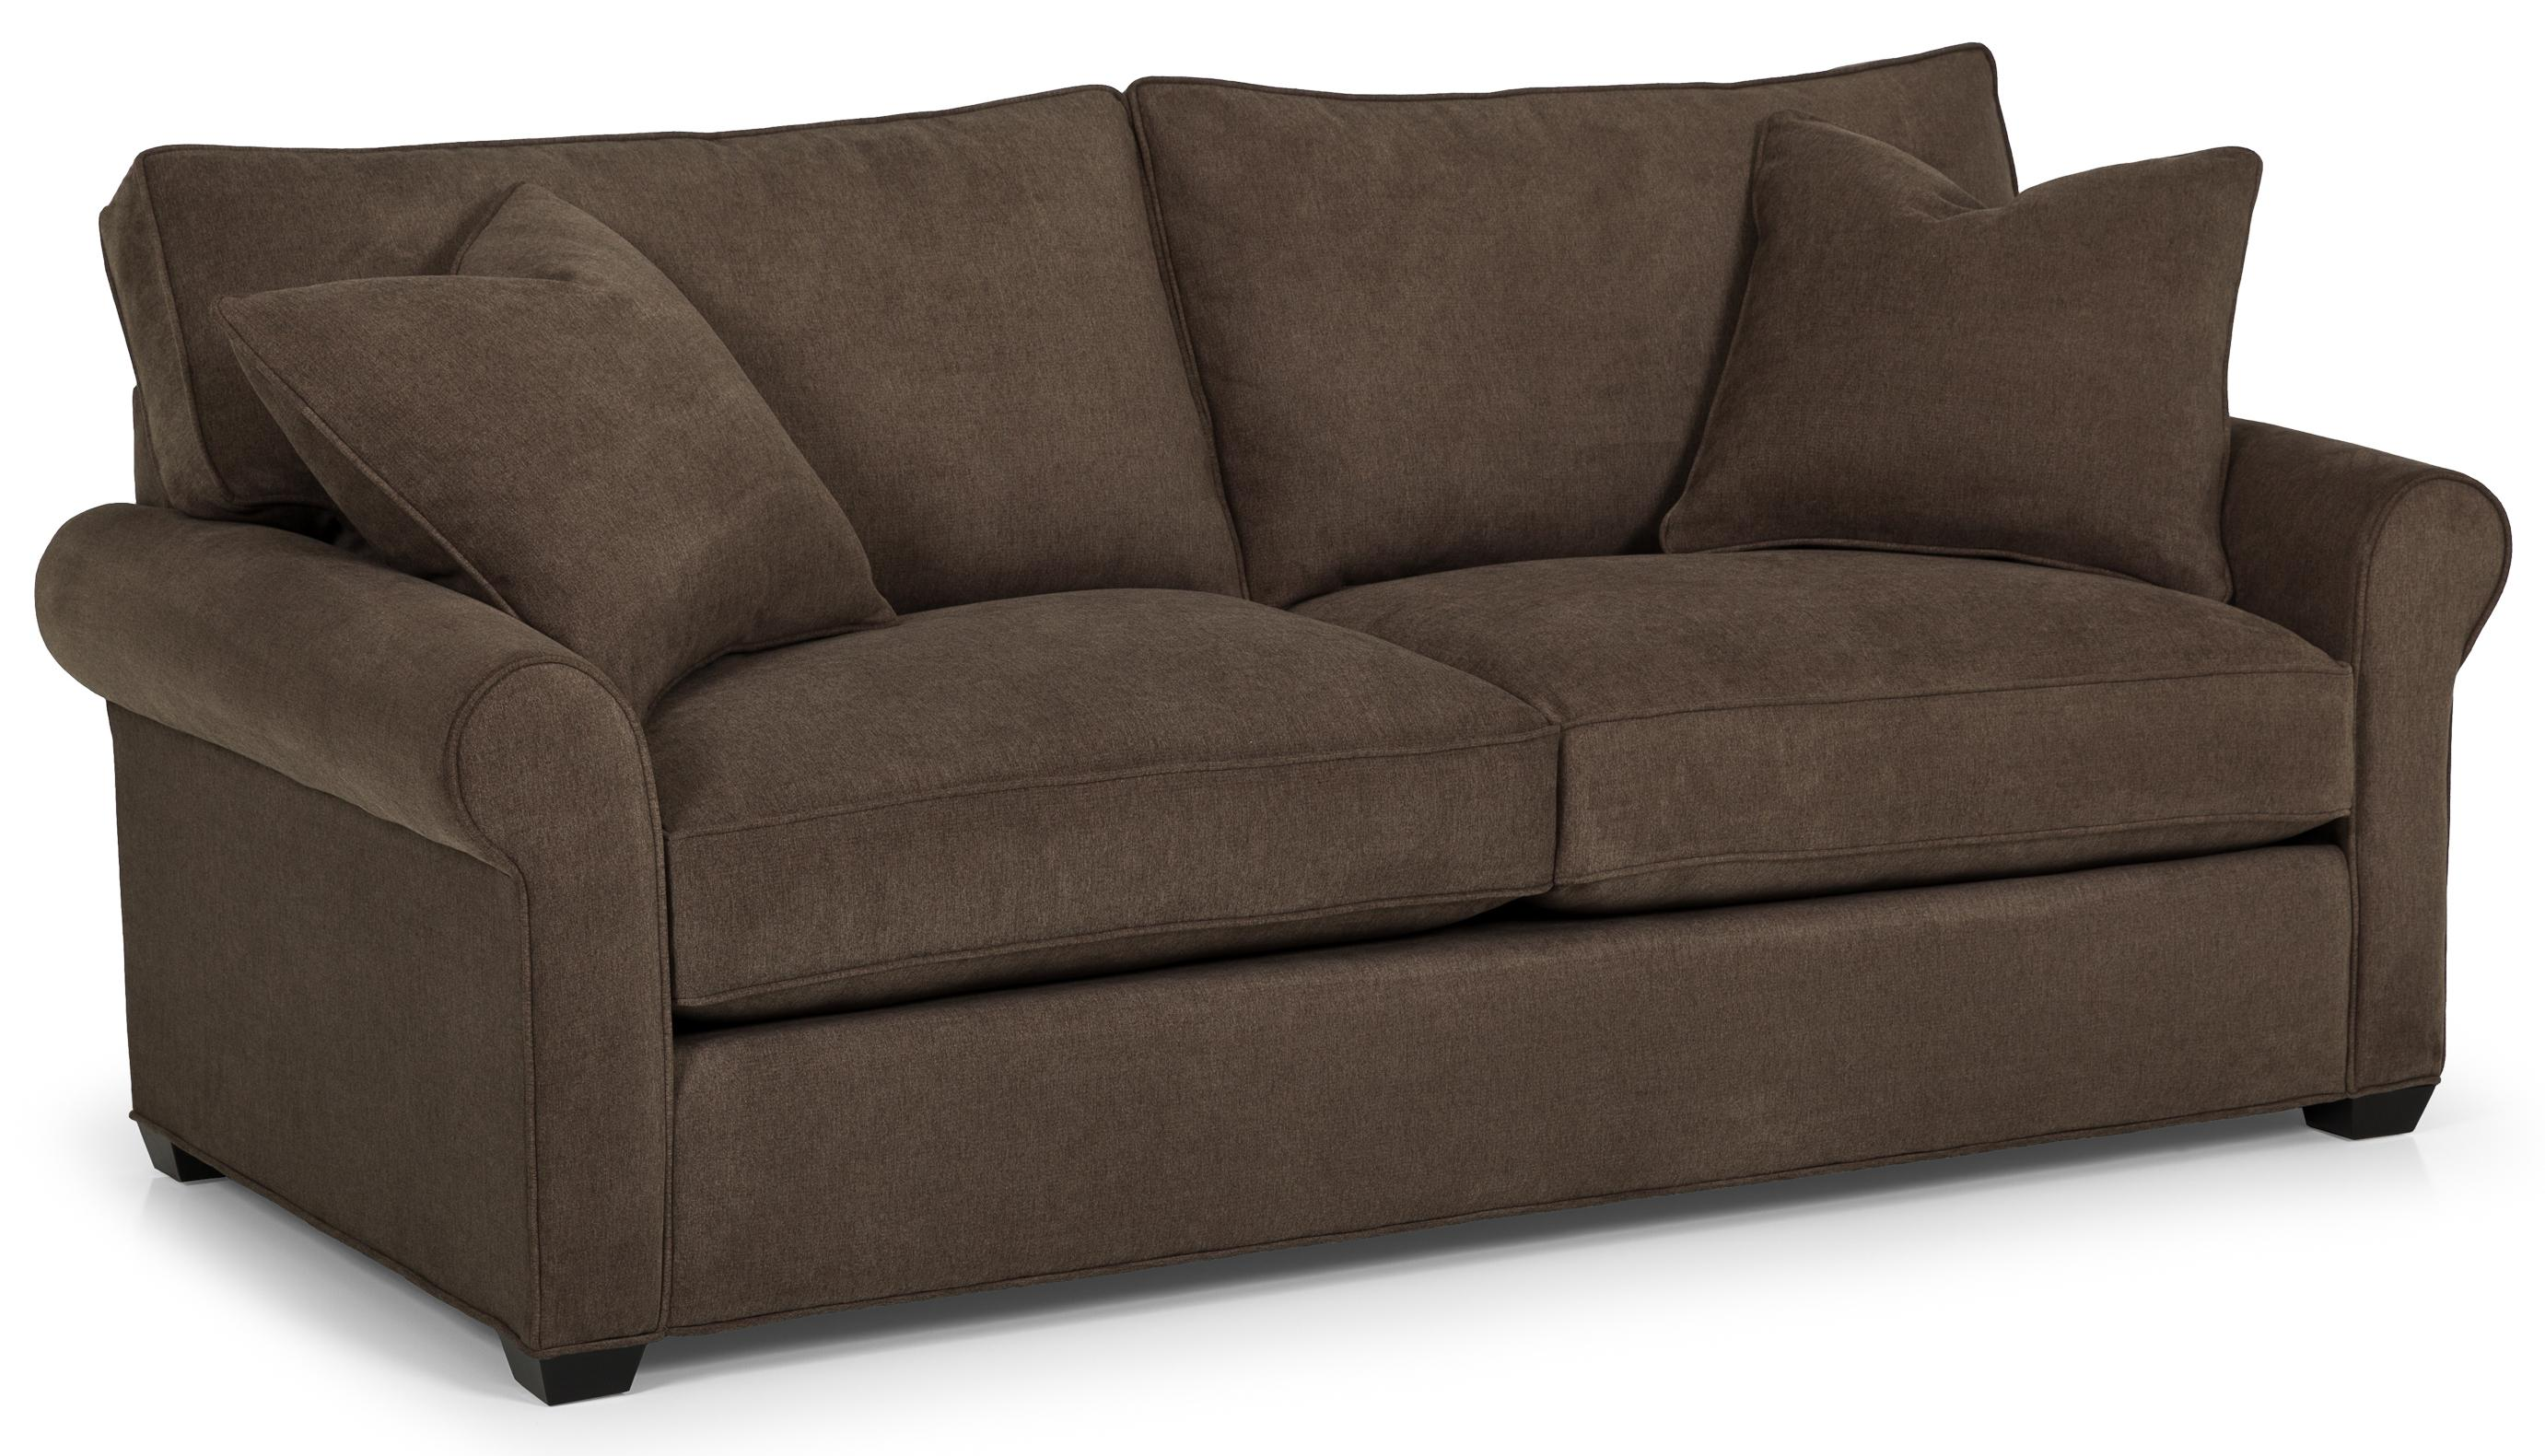 225 Transitional Queen Gel Sofa Sleeper by Stanton at Wilson's Furniture